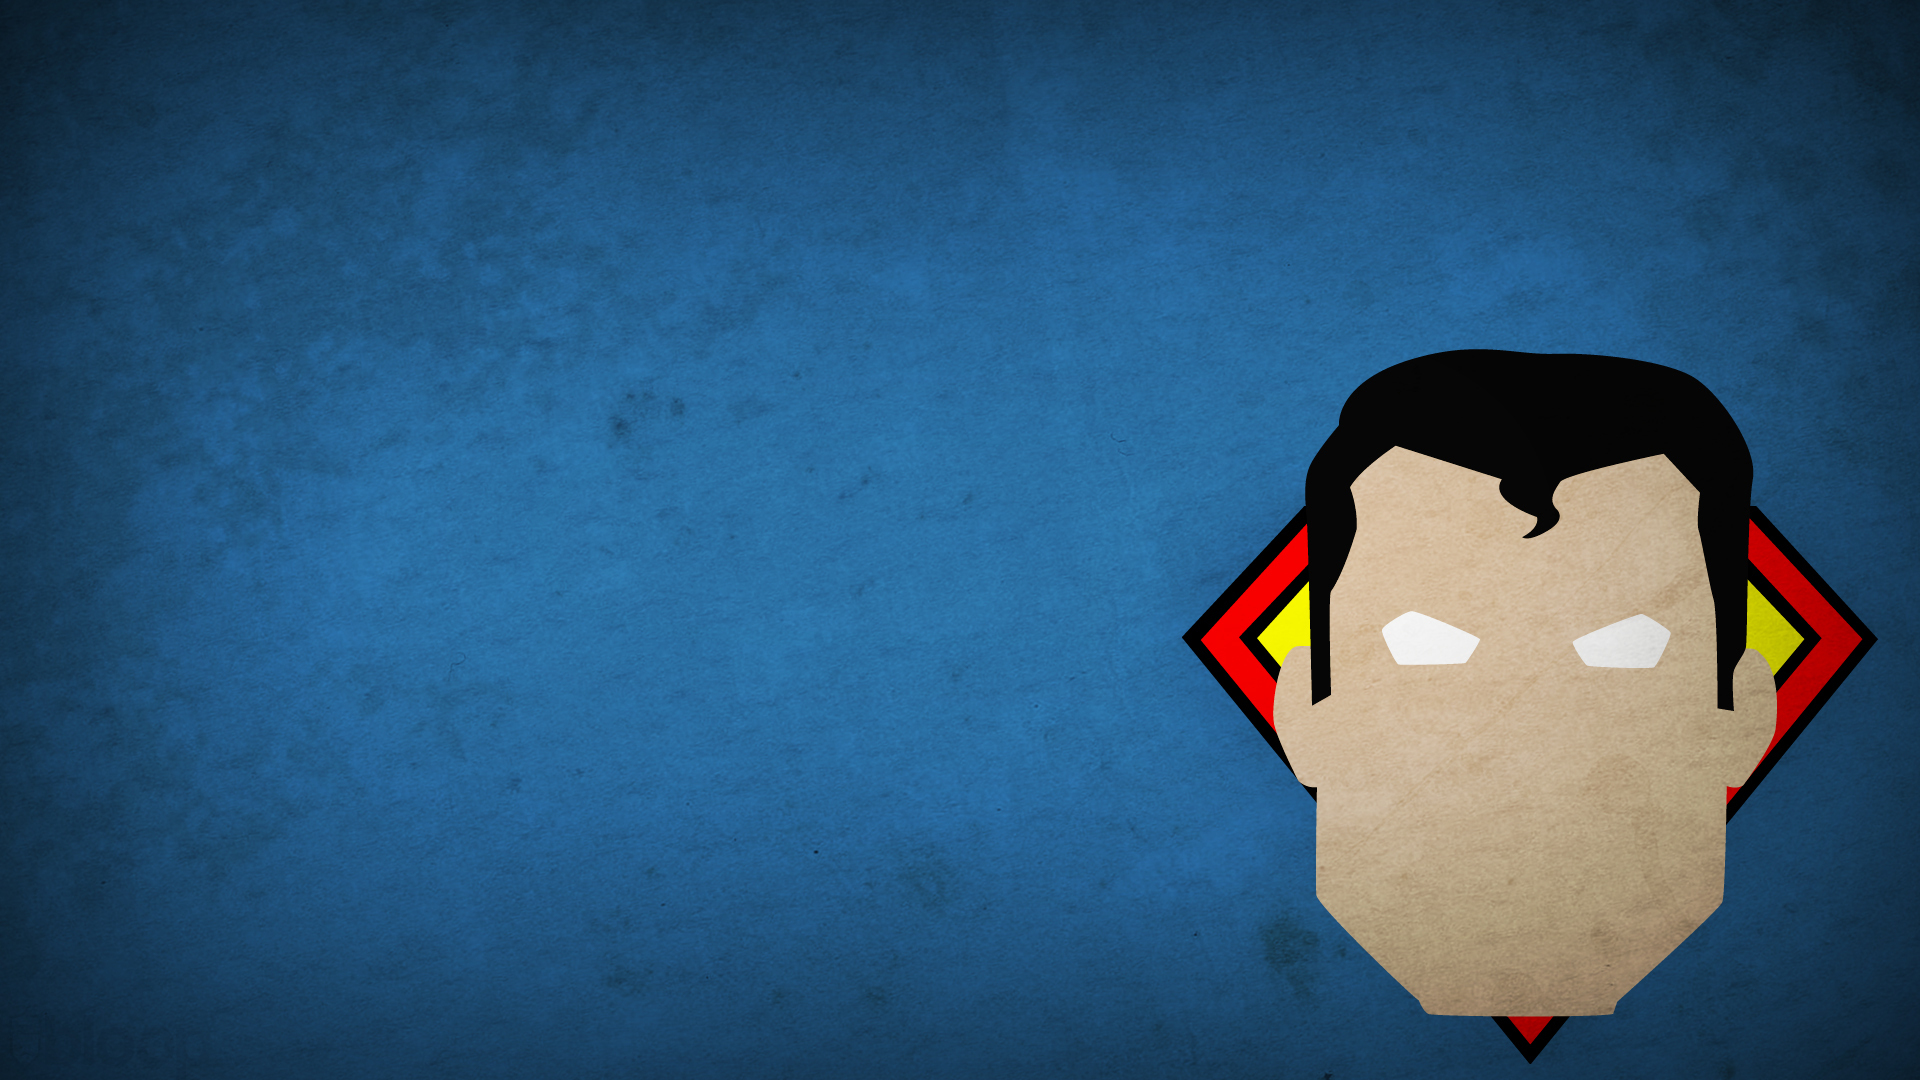 minimalism, hero, superman